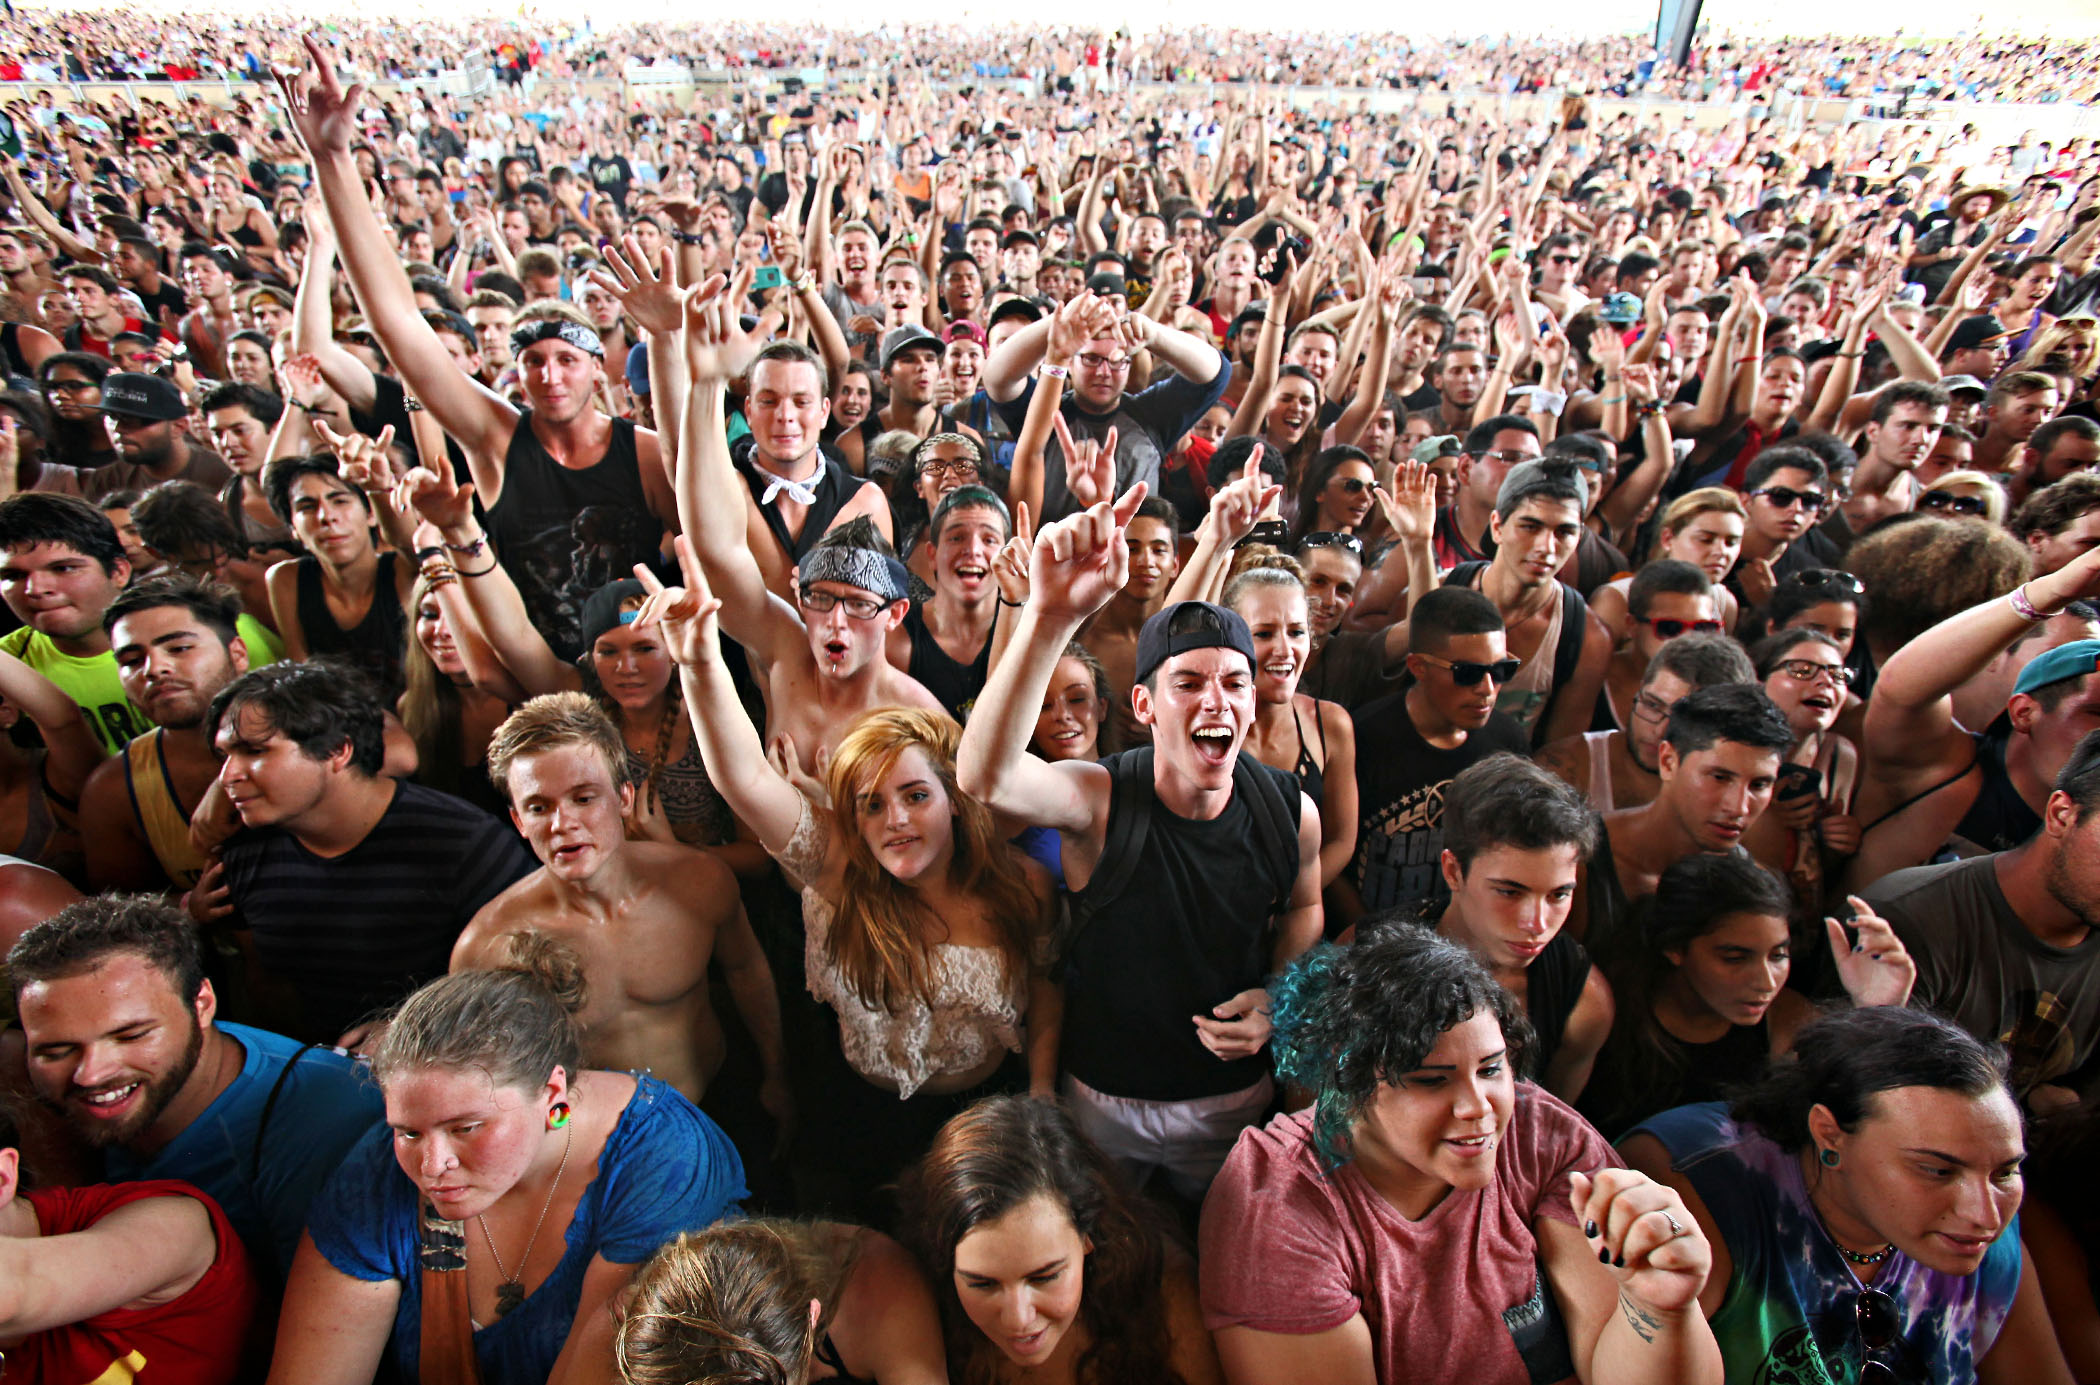 Fans cheer for the band Yellowcard on the Kia Stage. (Richard Graulich/The Palm Beach Post)